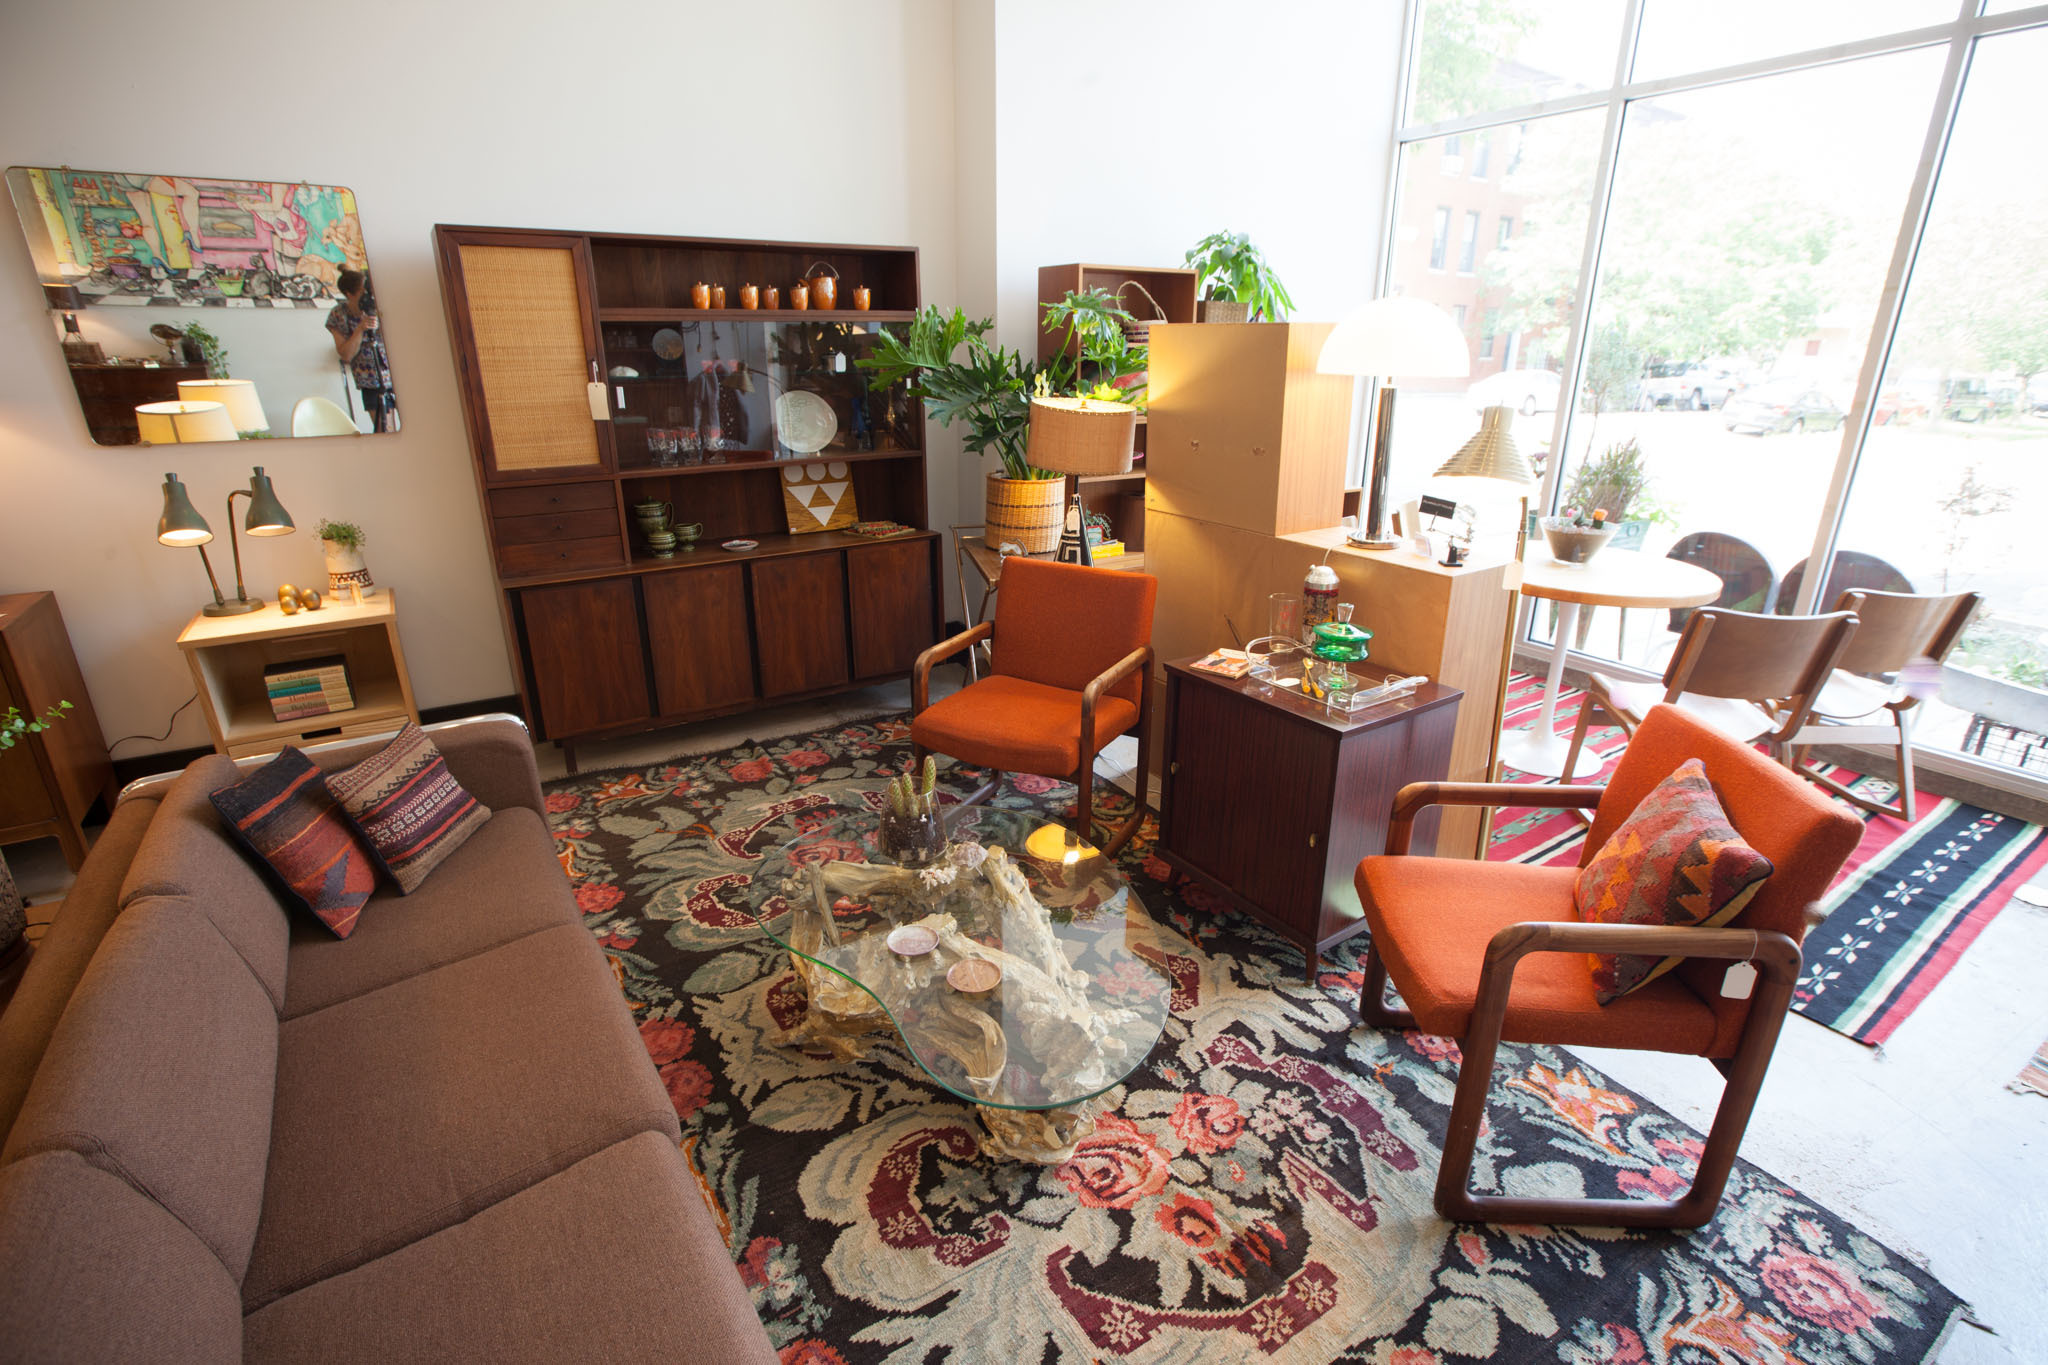 Best antique stores in Chicago